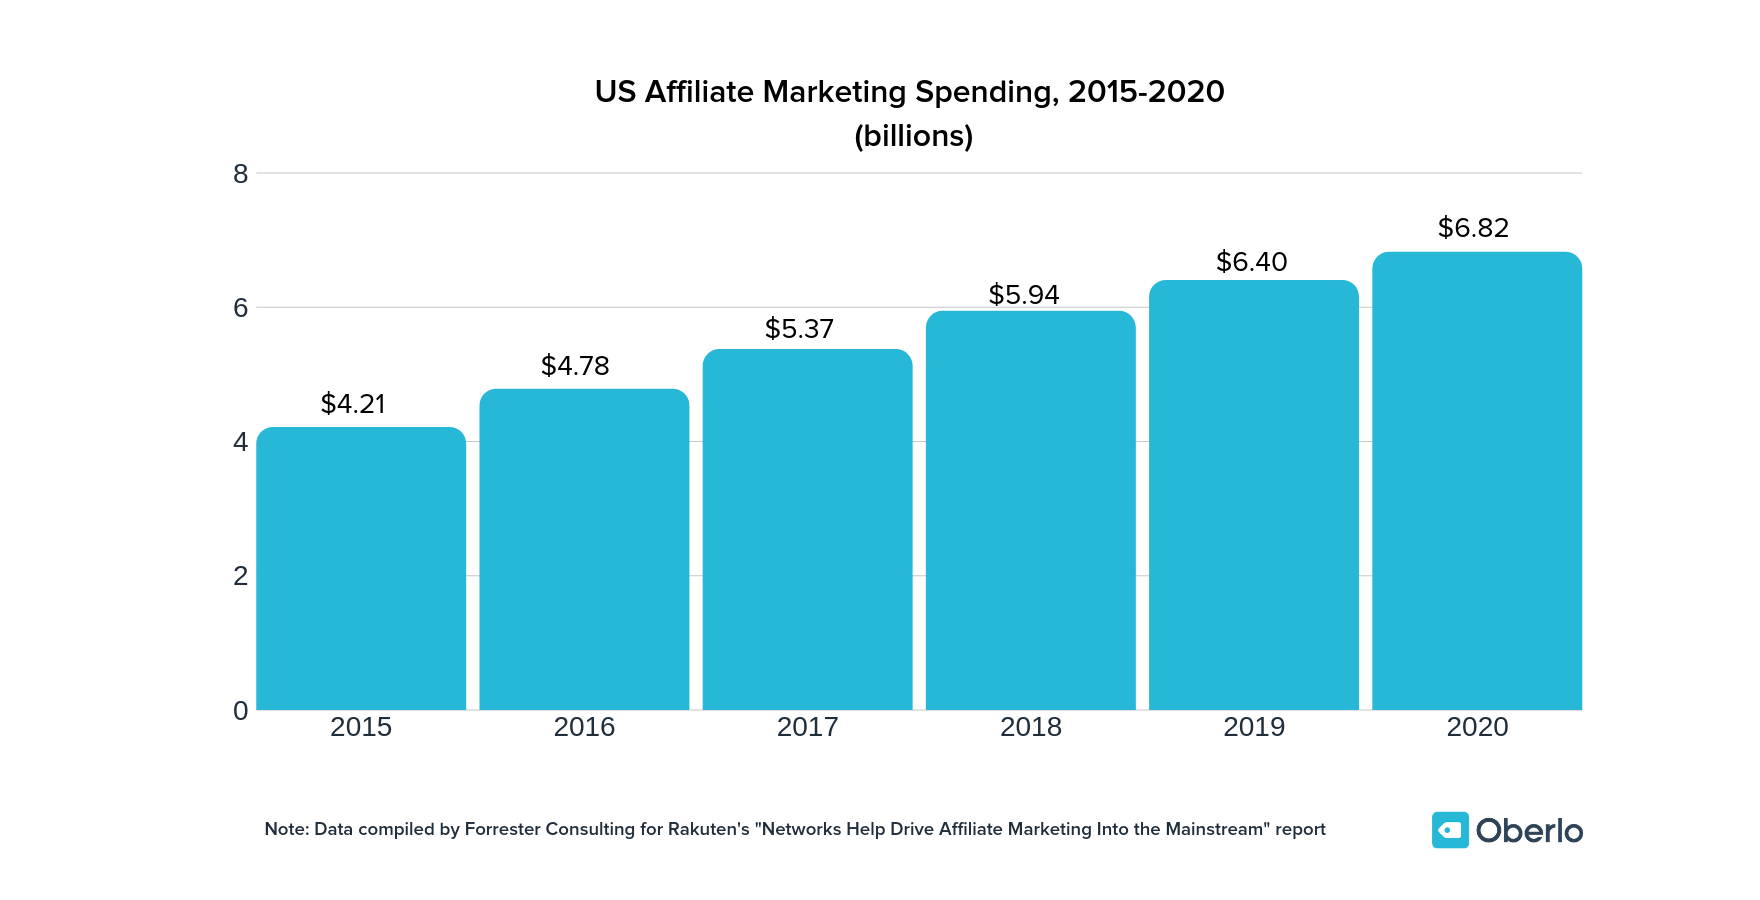 affiliate marketing is projected to reach $6.8 billion by 2020